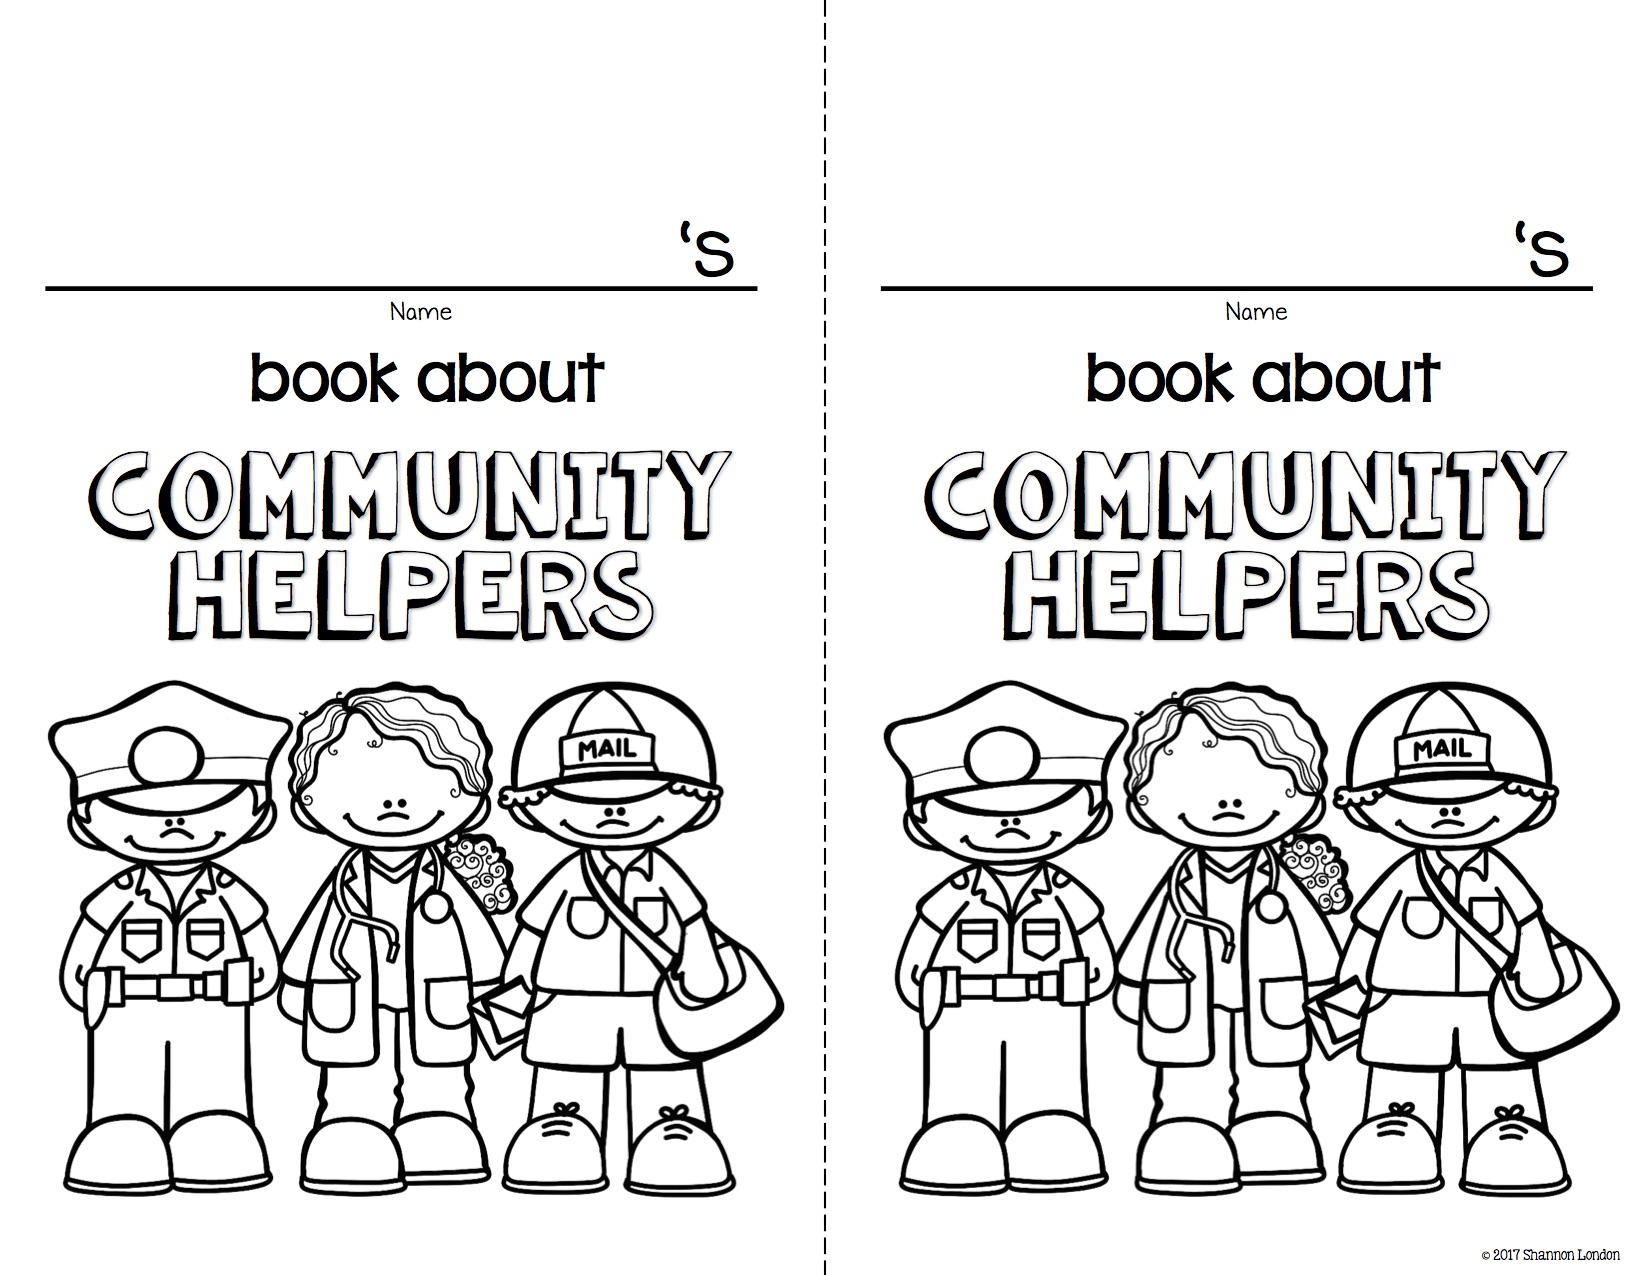 6 Reasons This Community Helpers Pack is the Best - The Super Teacher